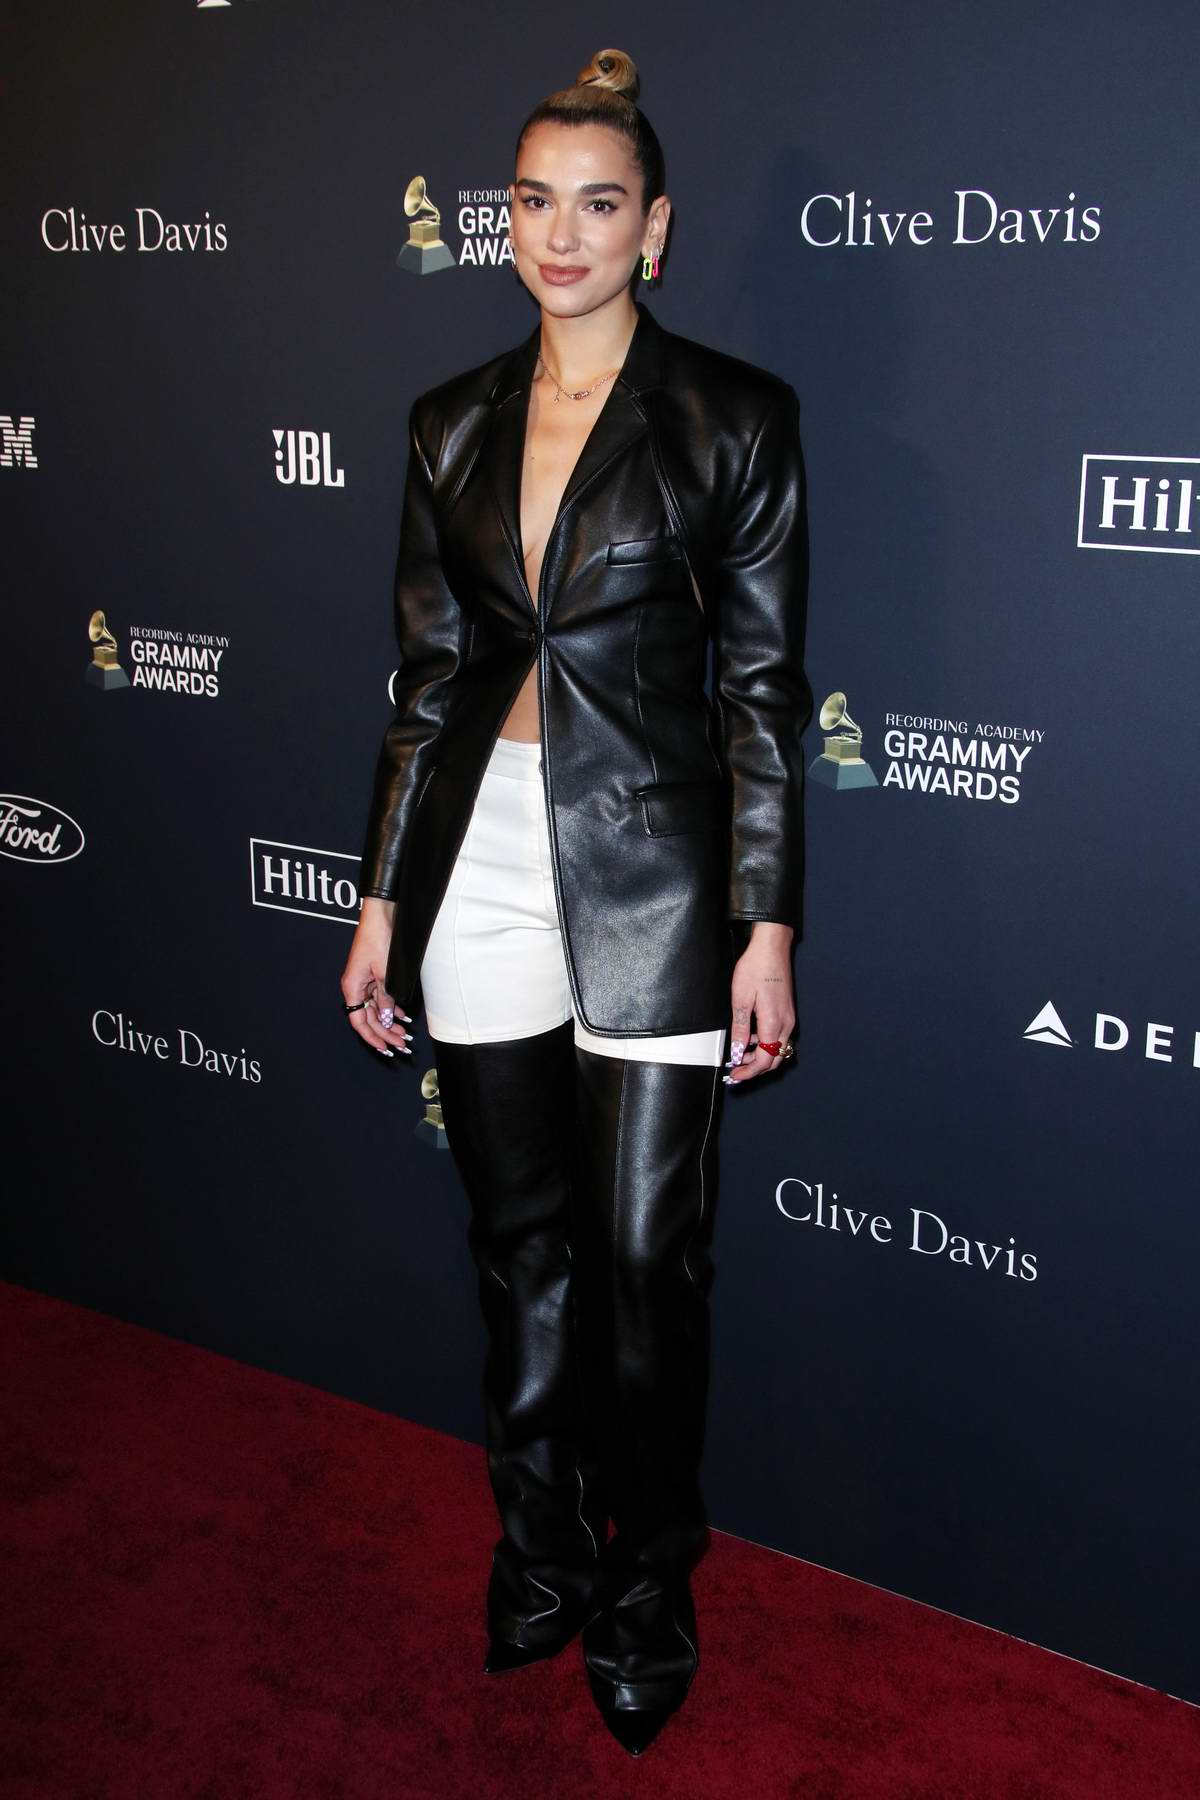 Dua Lipa attends the Recording Academy and Clive Davis Pre-Grammy Gala in Beverly Hills, California